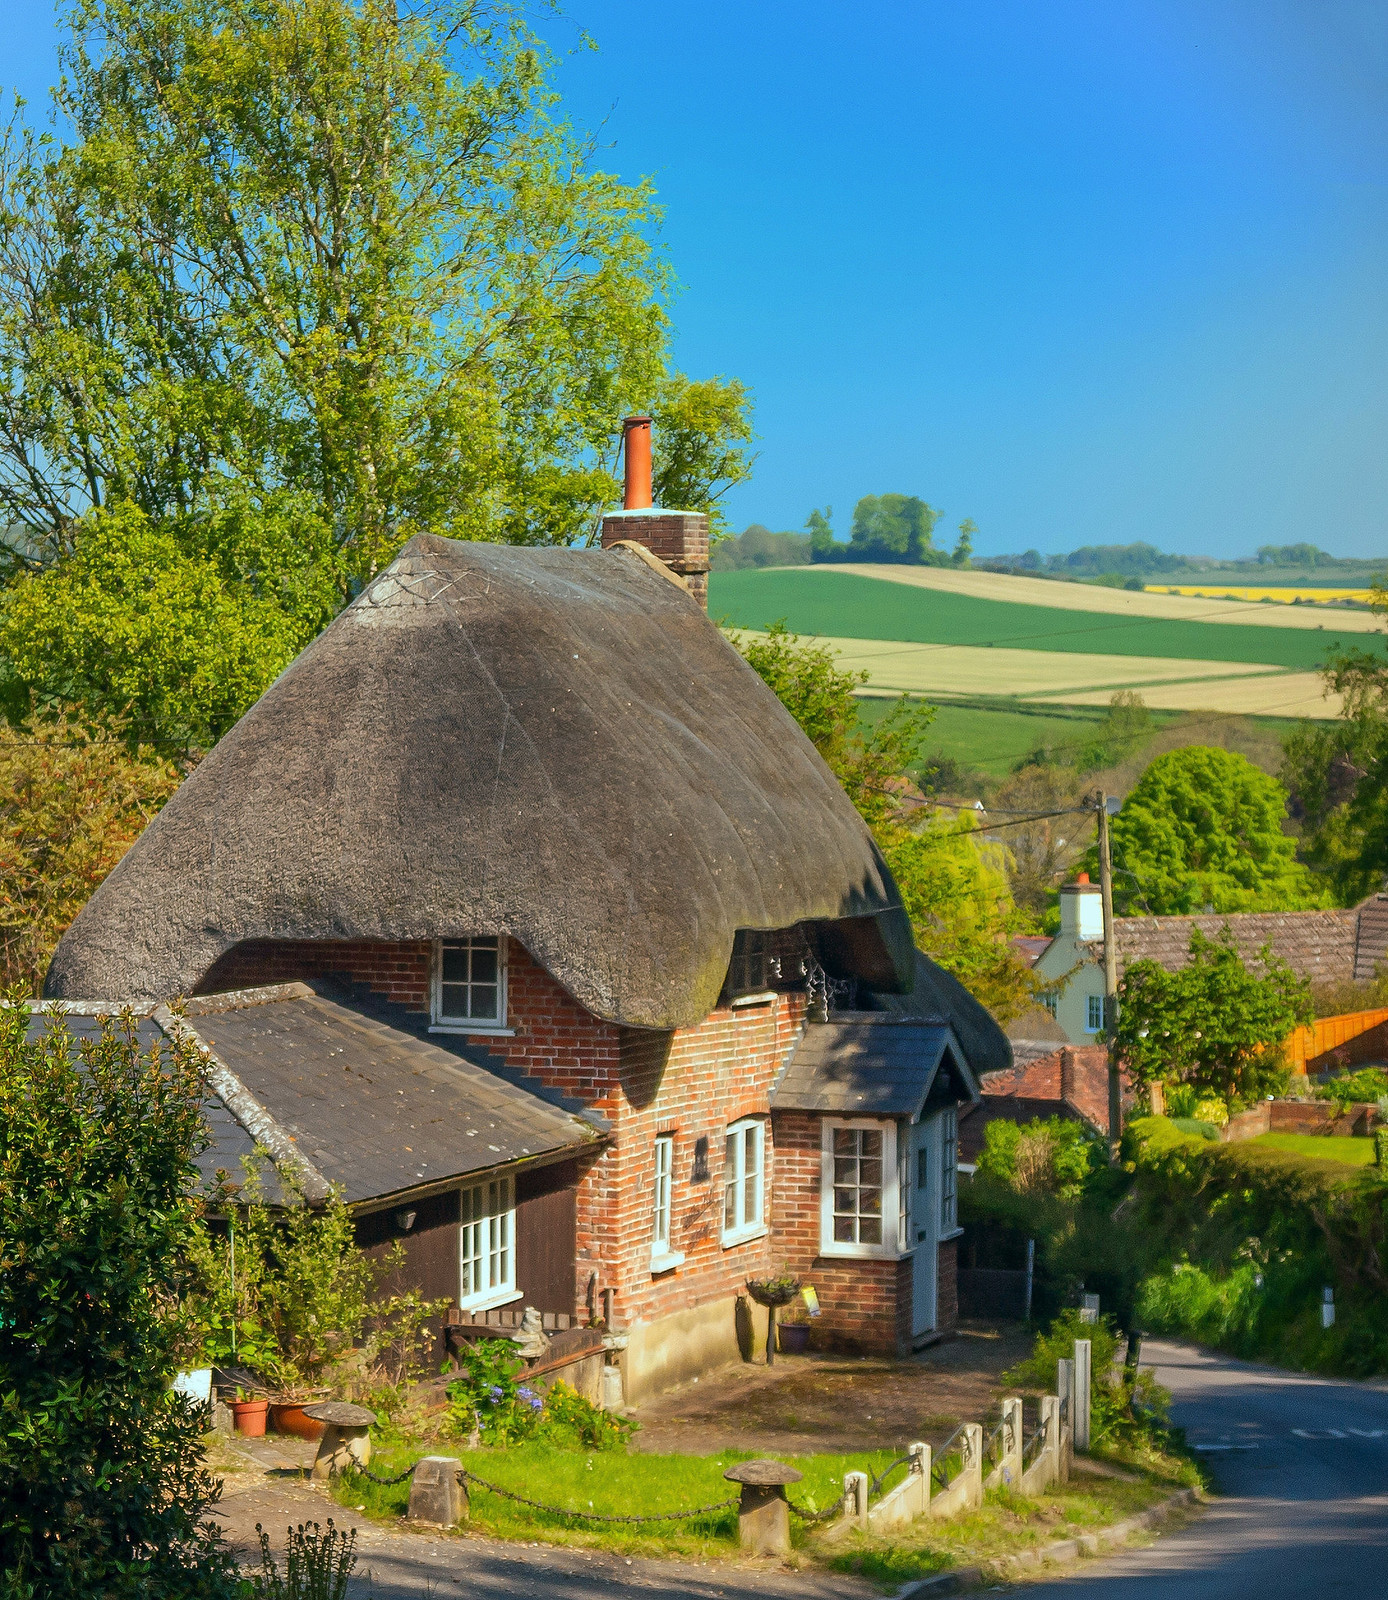 A pretty thatched cottage above the village of Pitton in Wiltshire. Credit Anguskirk